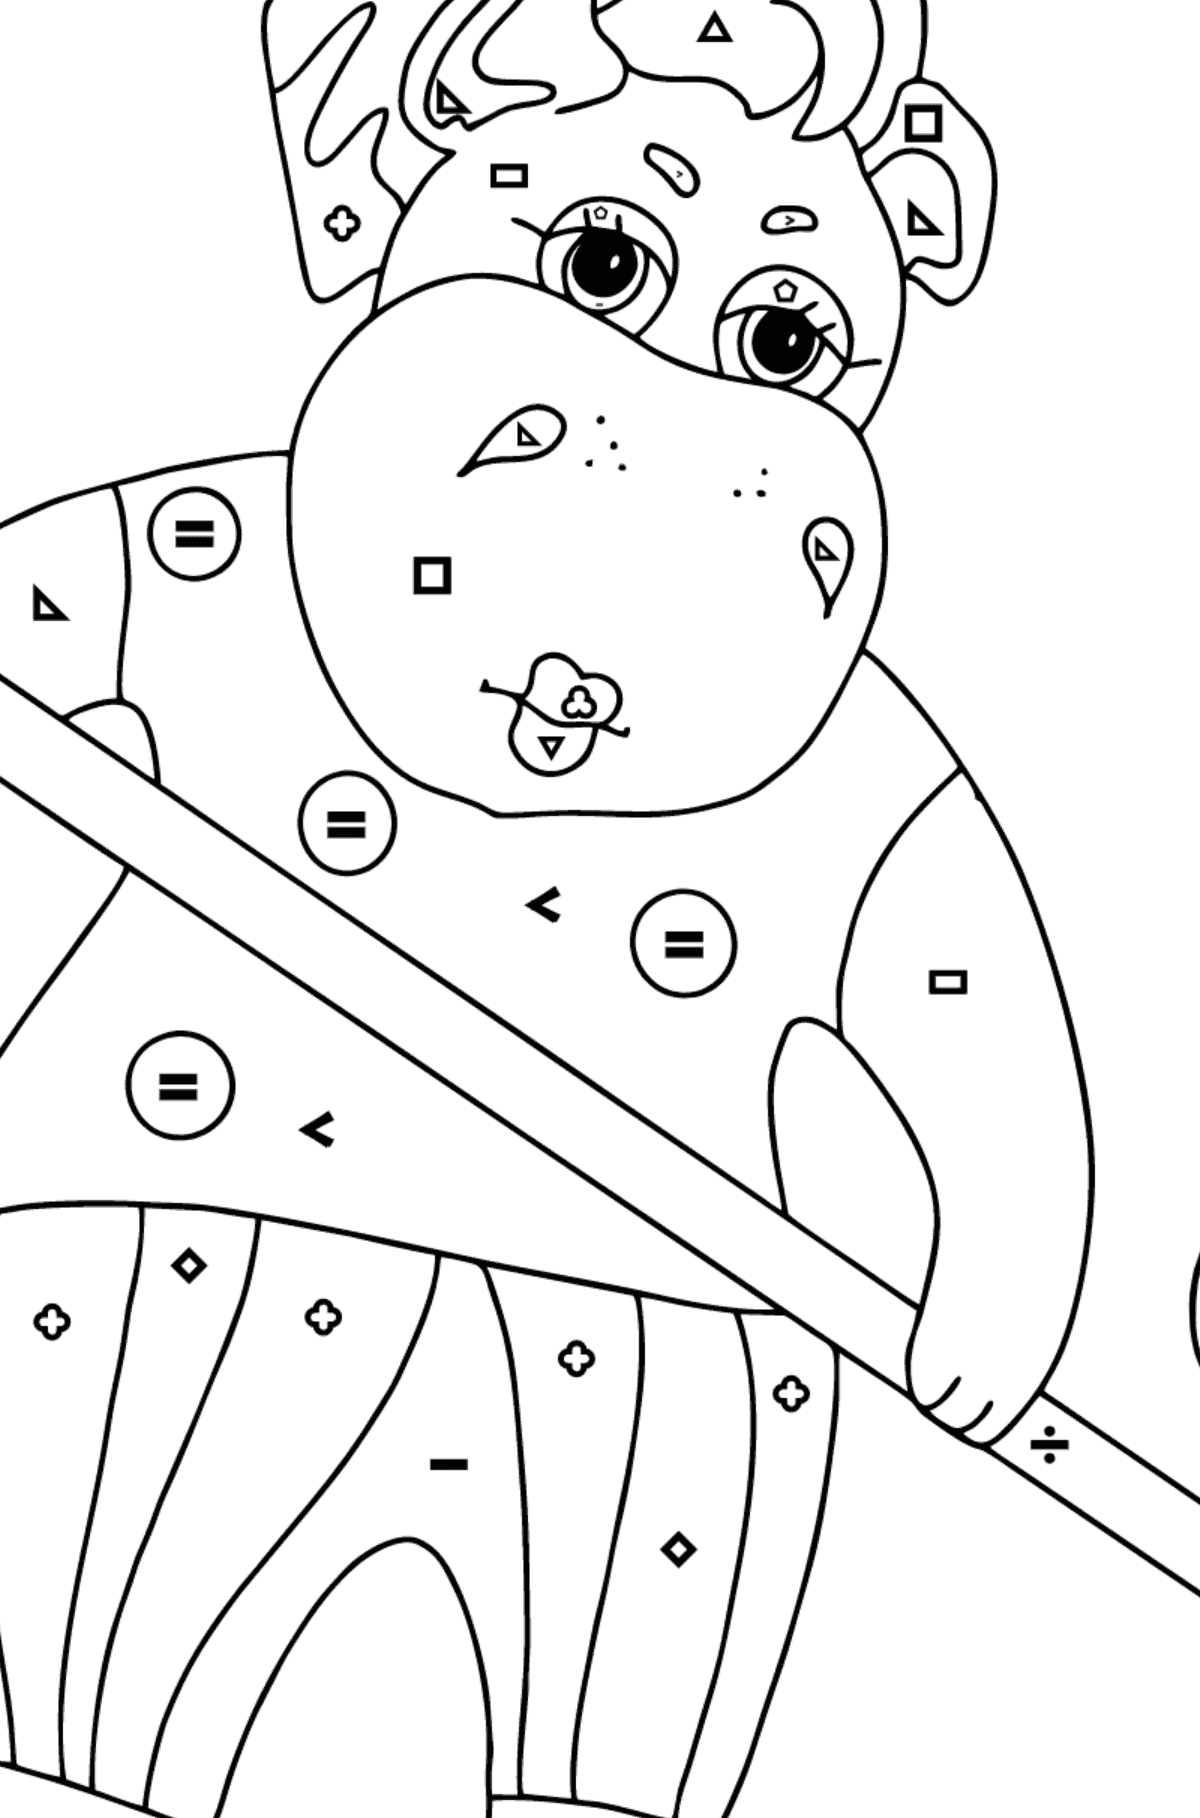 Coloring Page - A Hippo is Sweeping Autumn Leaves for Kids  - Color by Symbols and Geometric Shapes